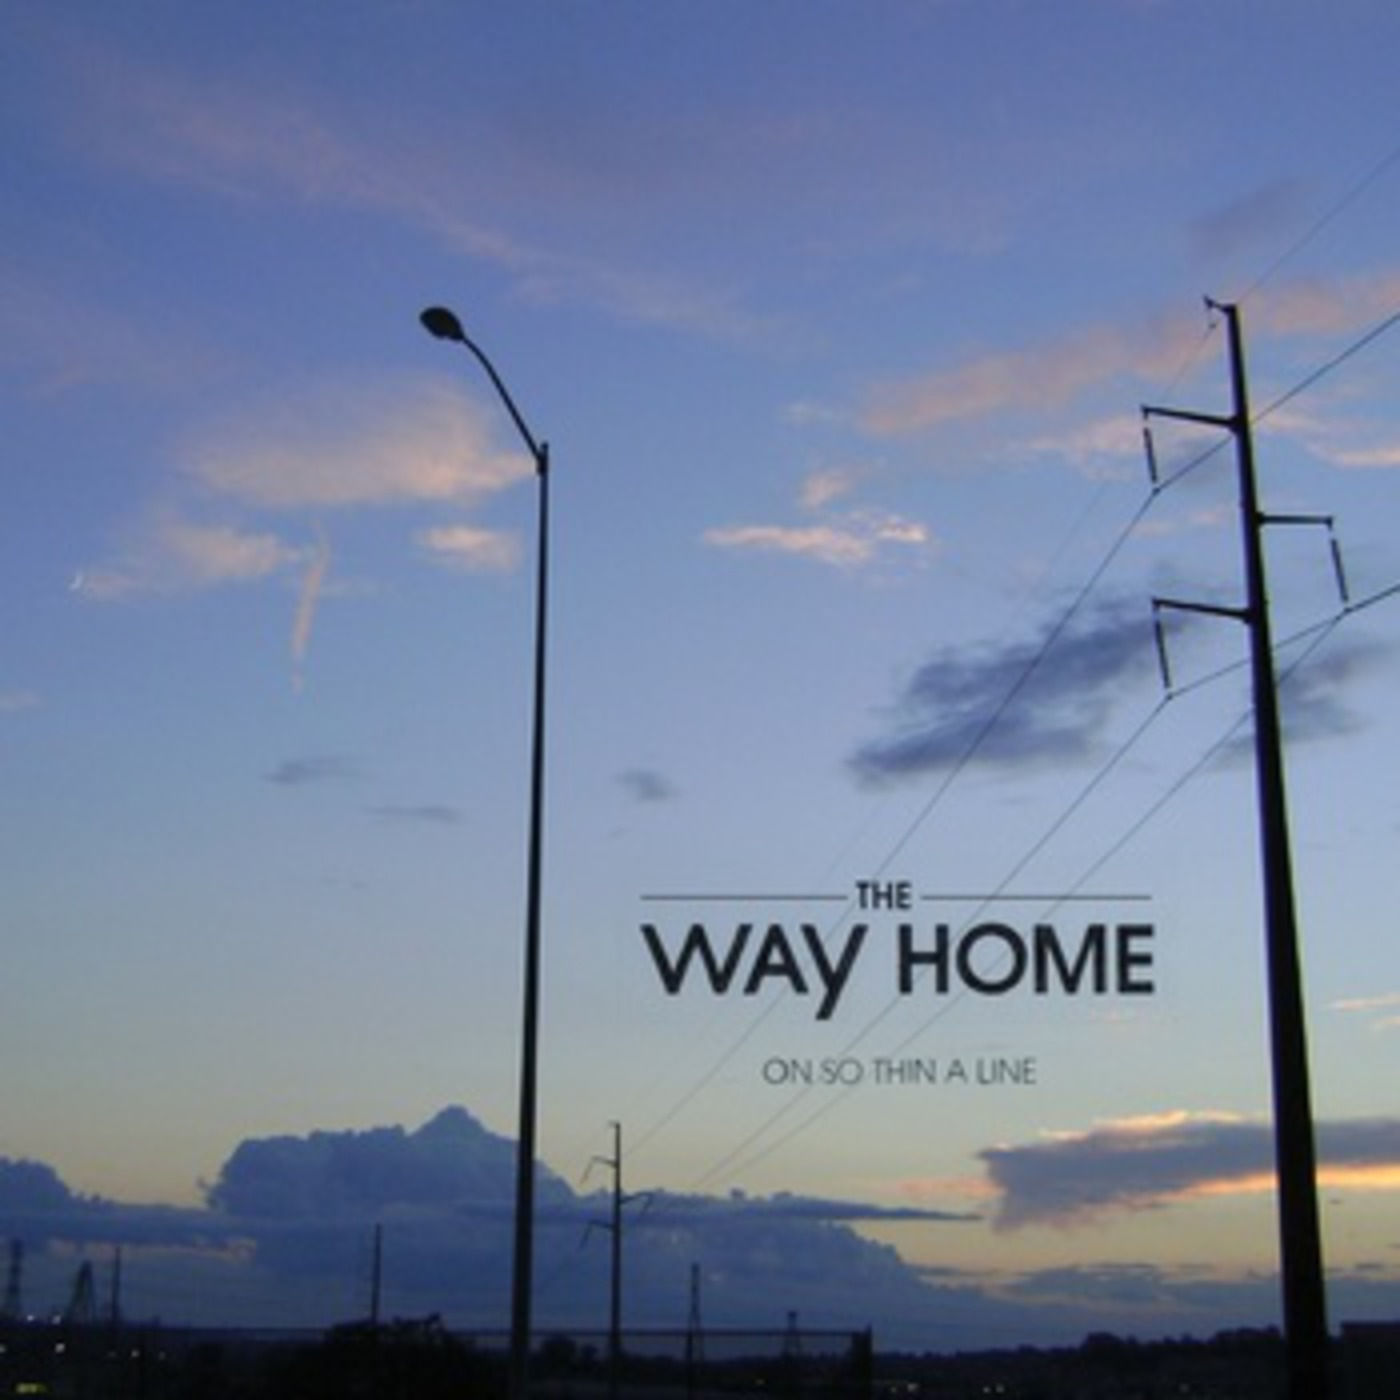 The Way Home - Boundary Blurring